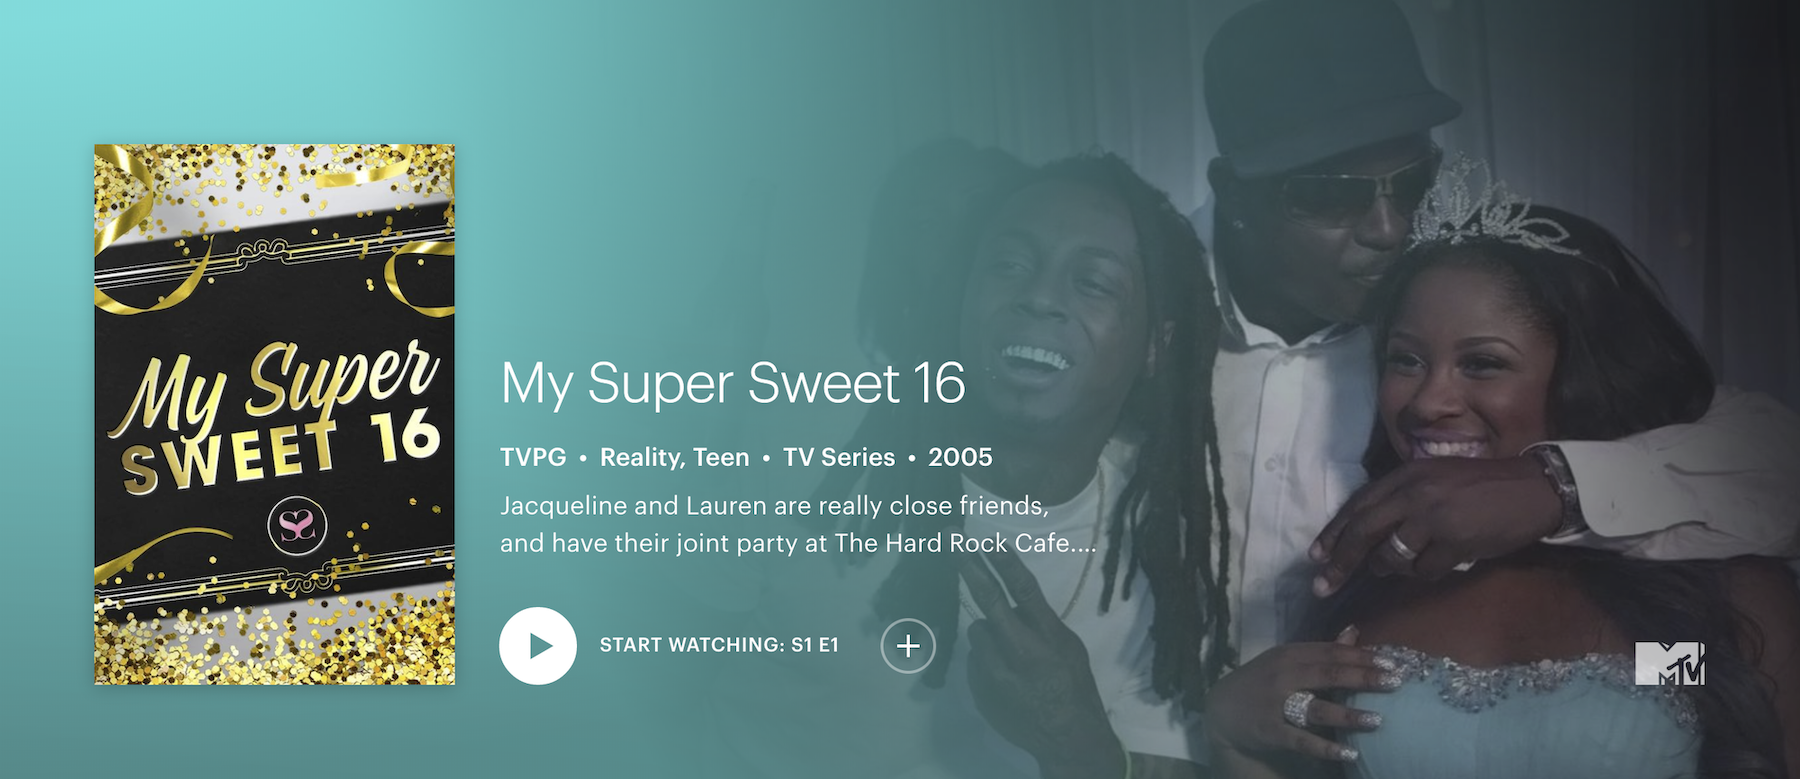 how to stream my super sweet 16 on Hulu